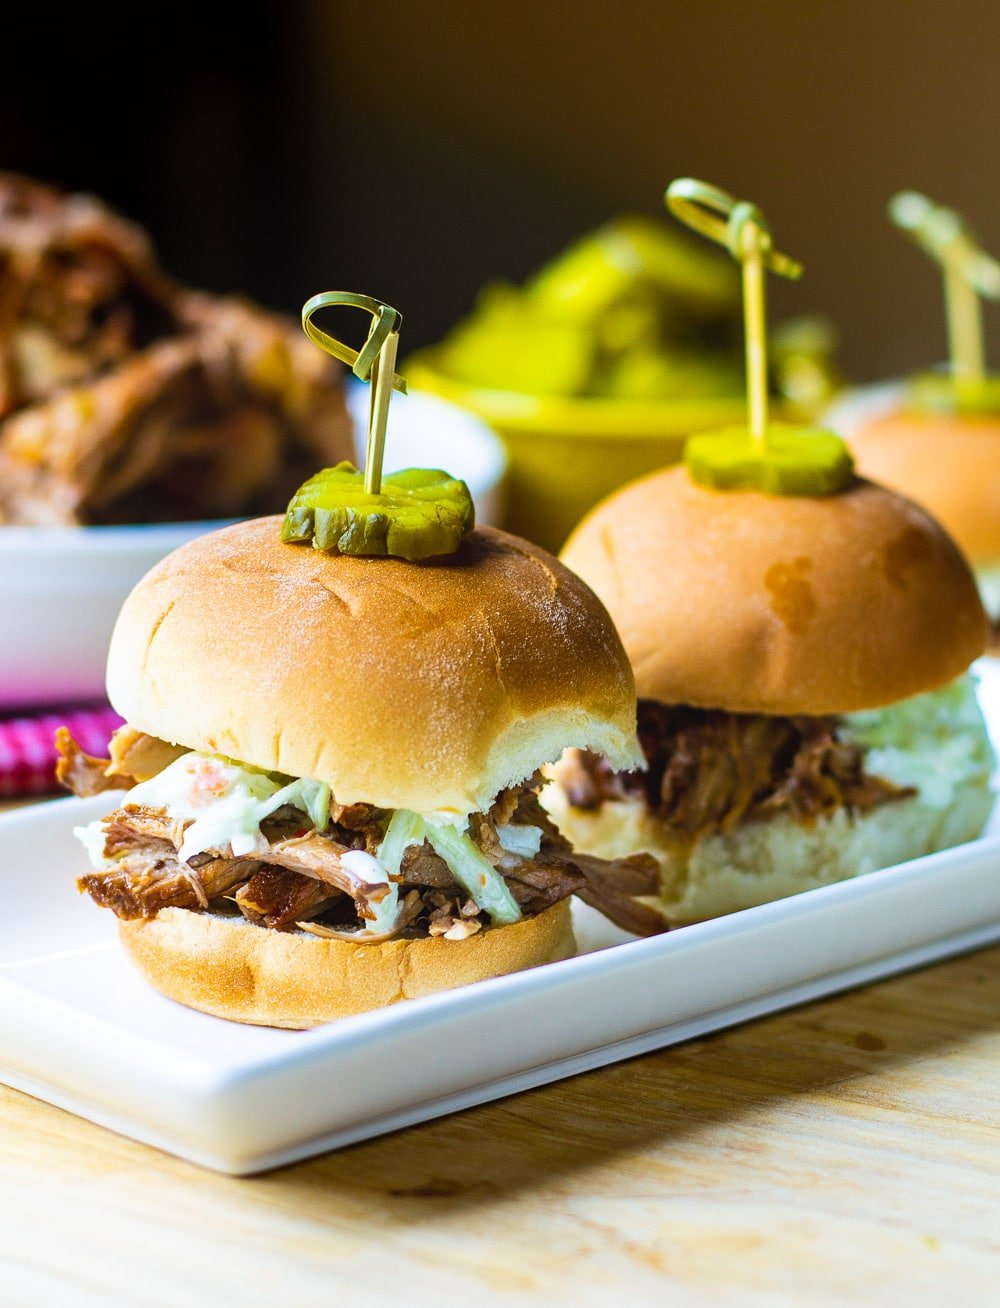 Carolina-Style Pulled Pork on slider buns with coleslaw.